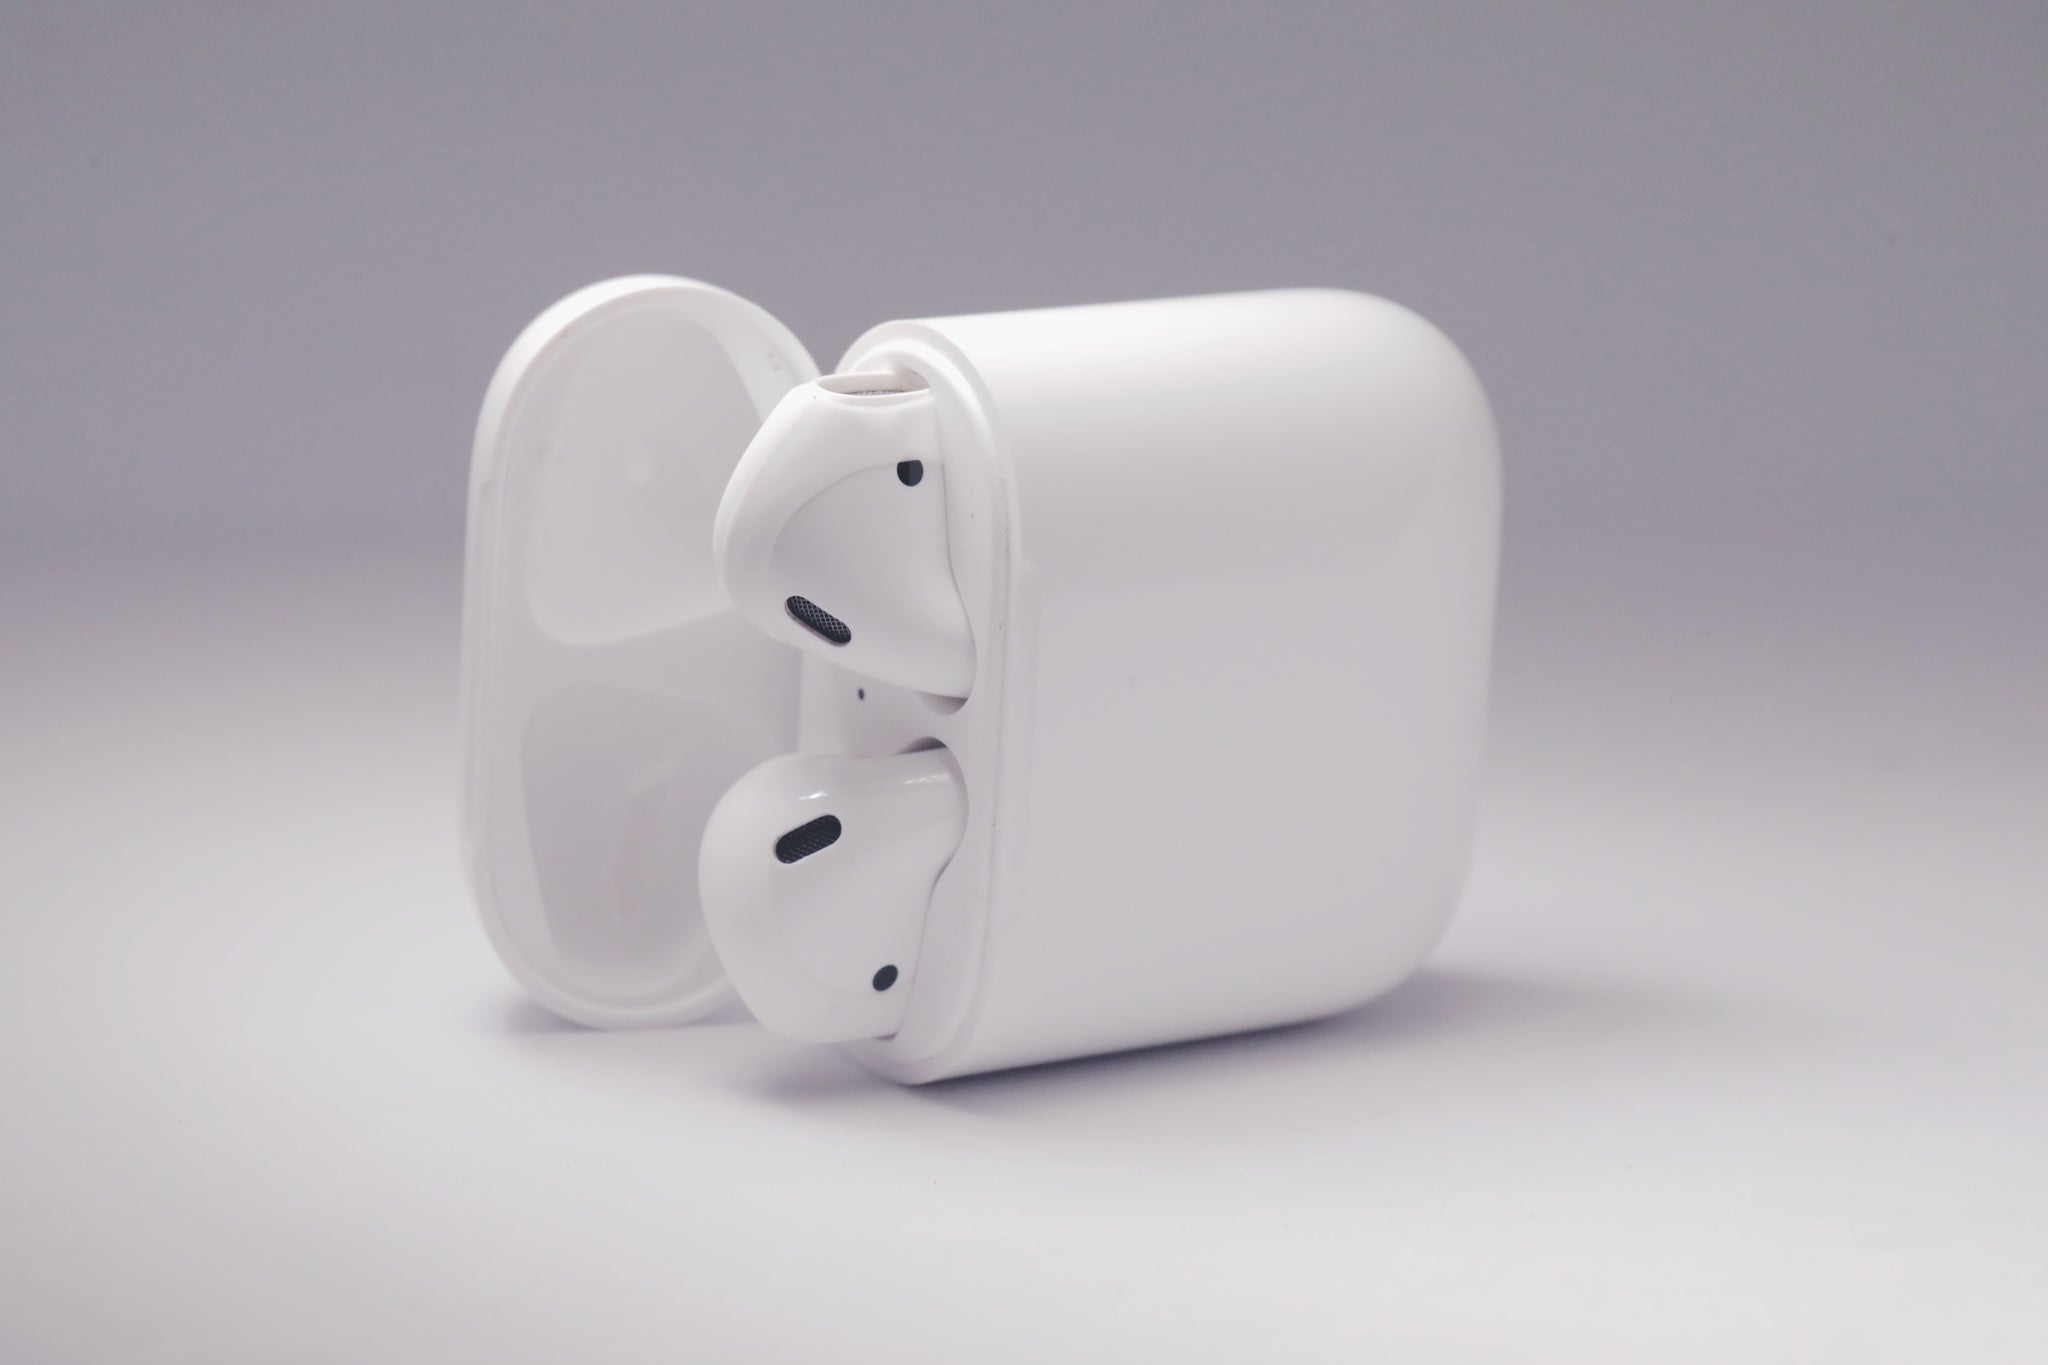 half off 43cad 8ffc7 Silicon Airpod Tips/Covers - Fits In Charging Case (WHITE)